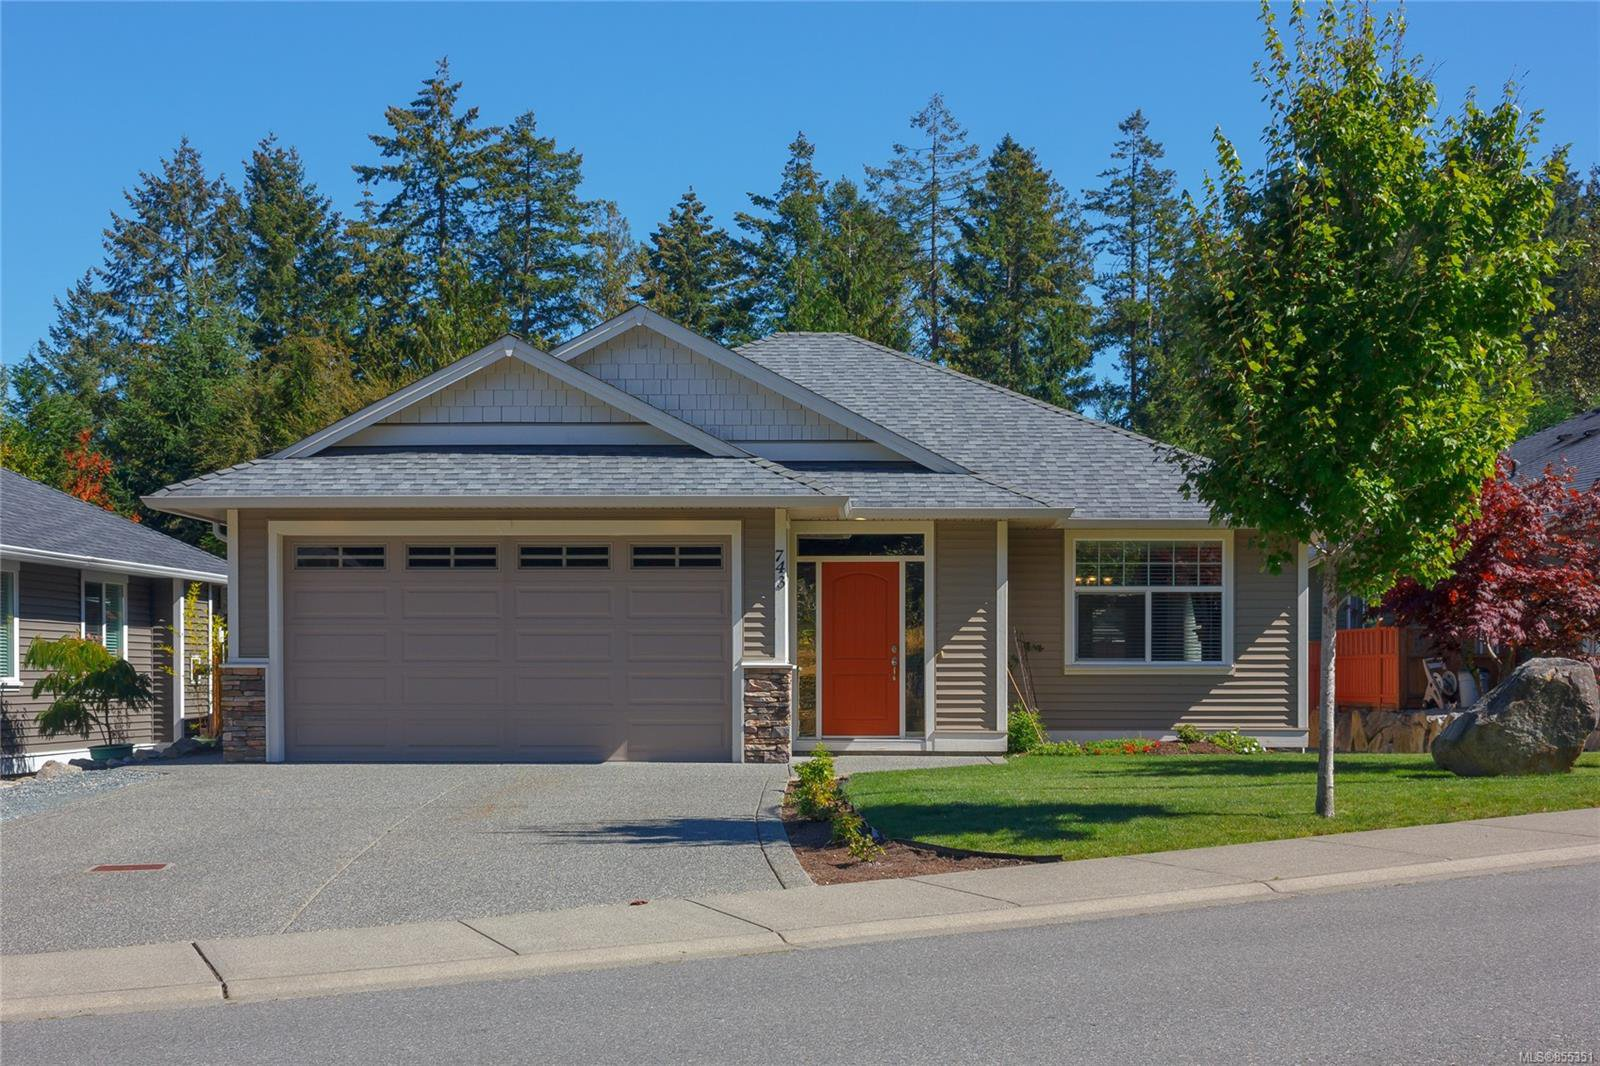 Main Photo: 743 Colonia Dr in : Du Ladysmith Single Family Detached for sale (Duncan)  : MLS®# 855351